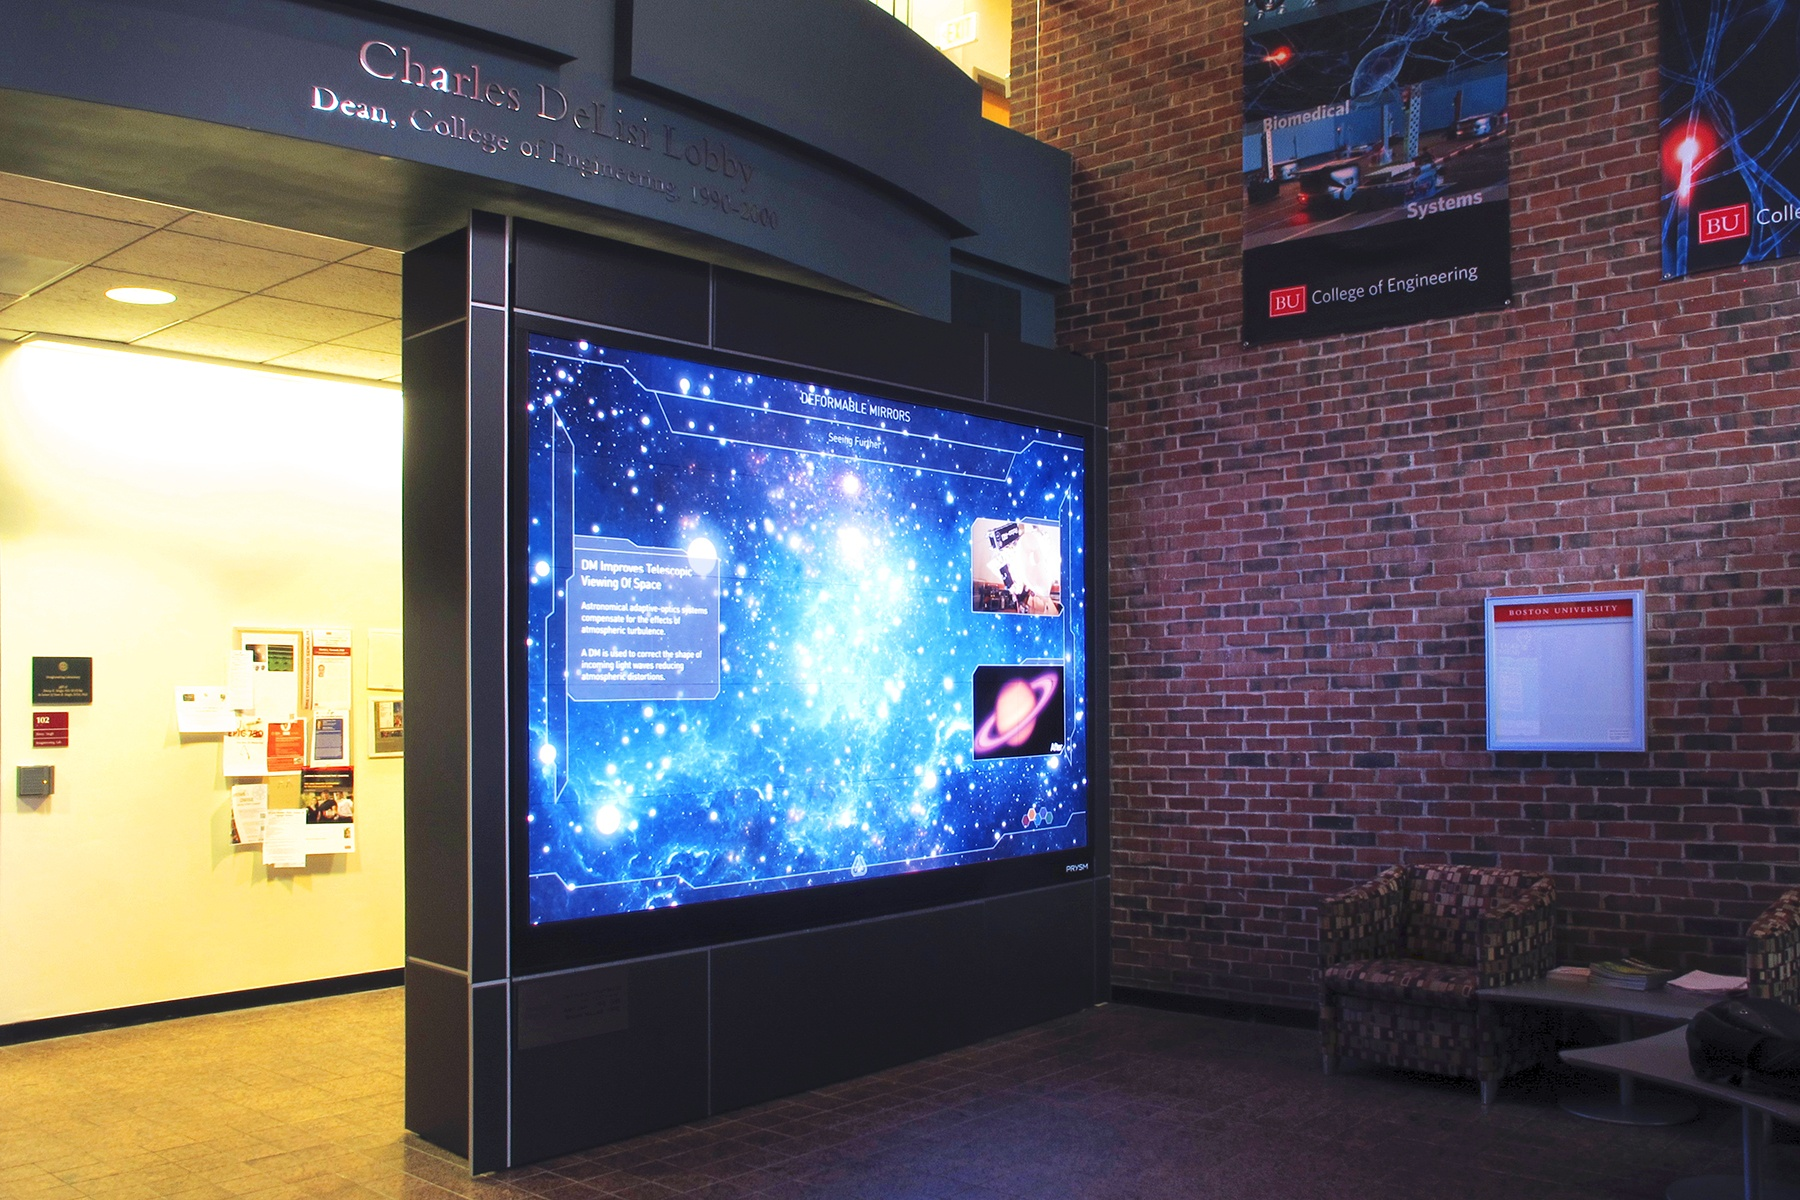 Boston University Unveils Prysm Video Wall Solution at College of Engineering 50th Anniversary